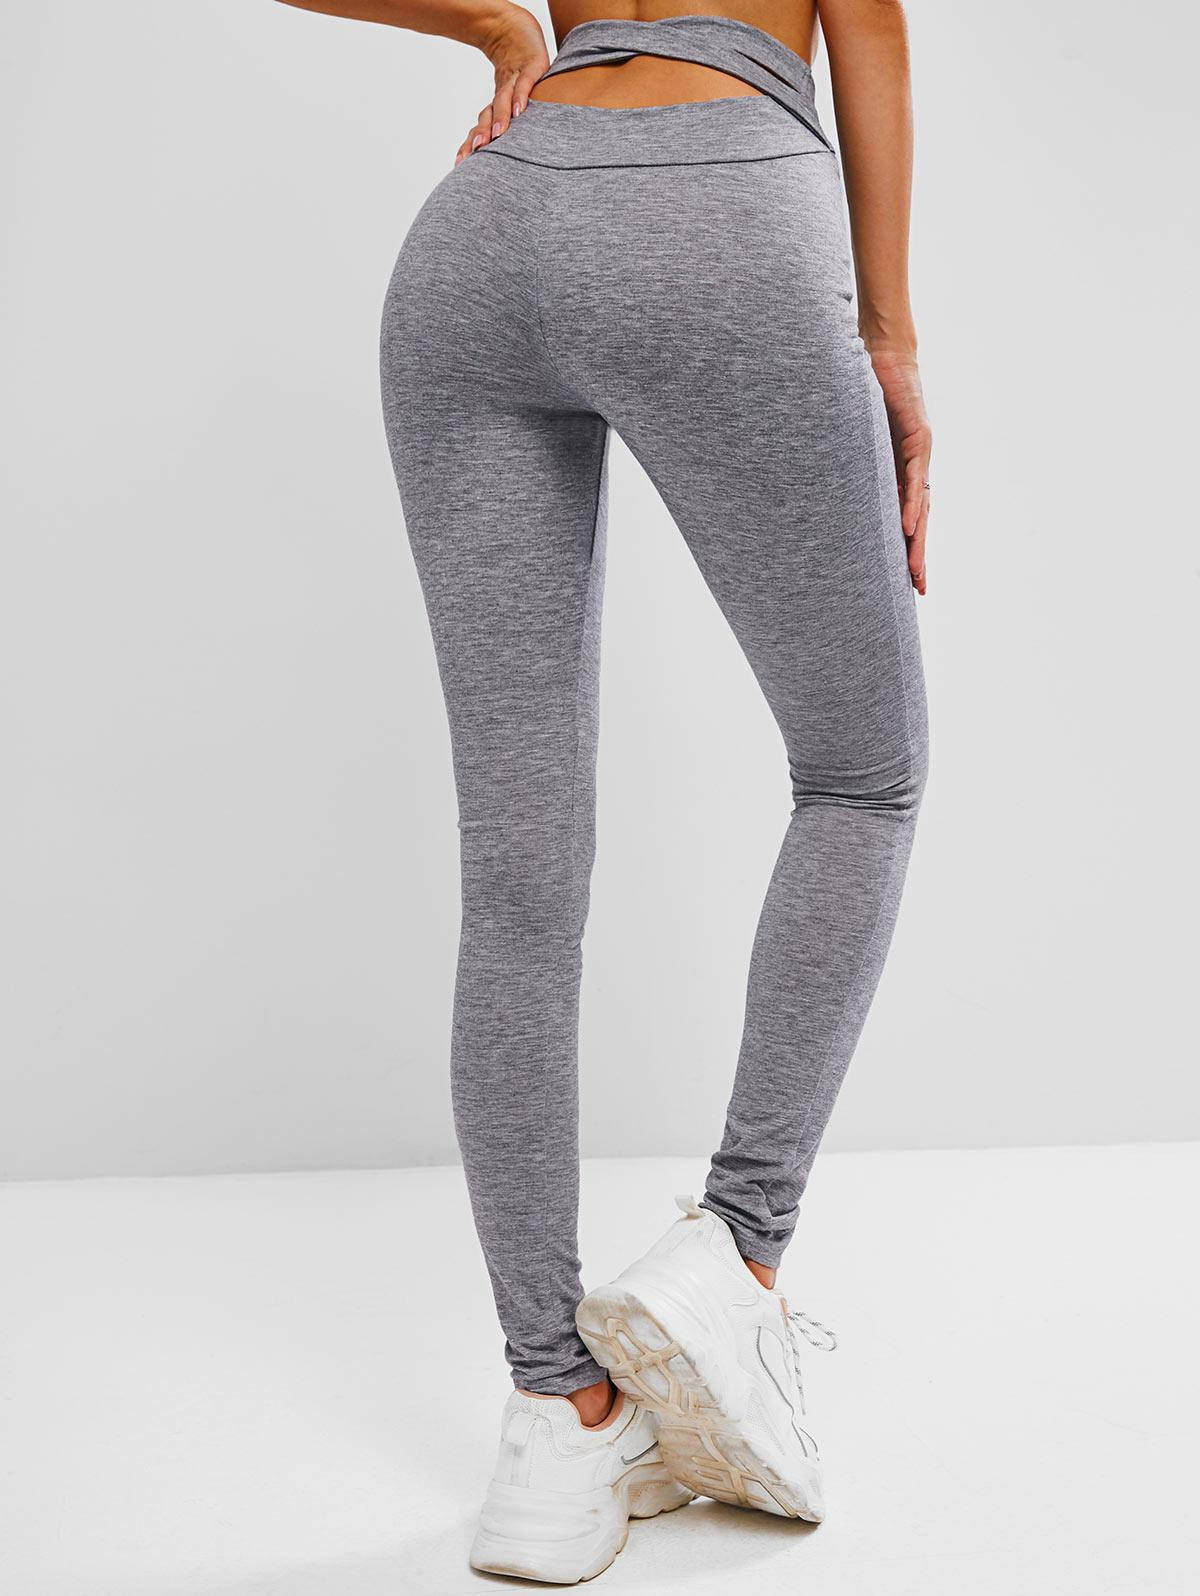 ZAFUL Legging de Gym Croisé S - Zaful FR - Modalova